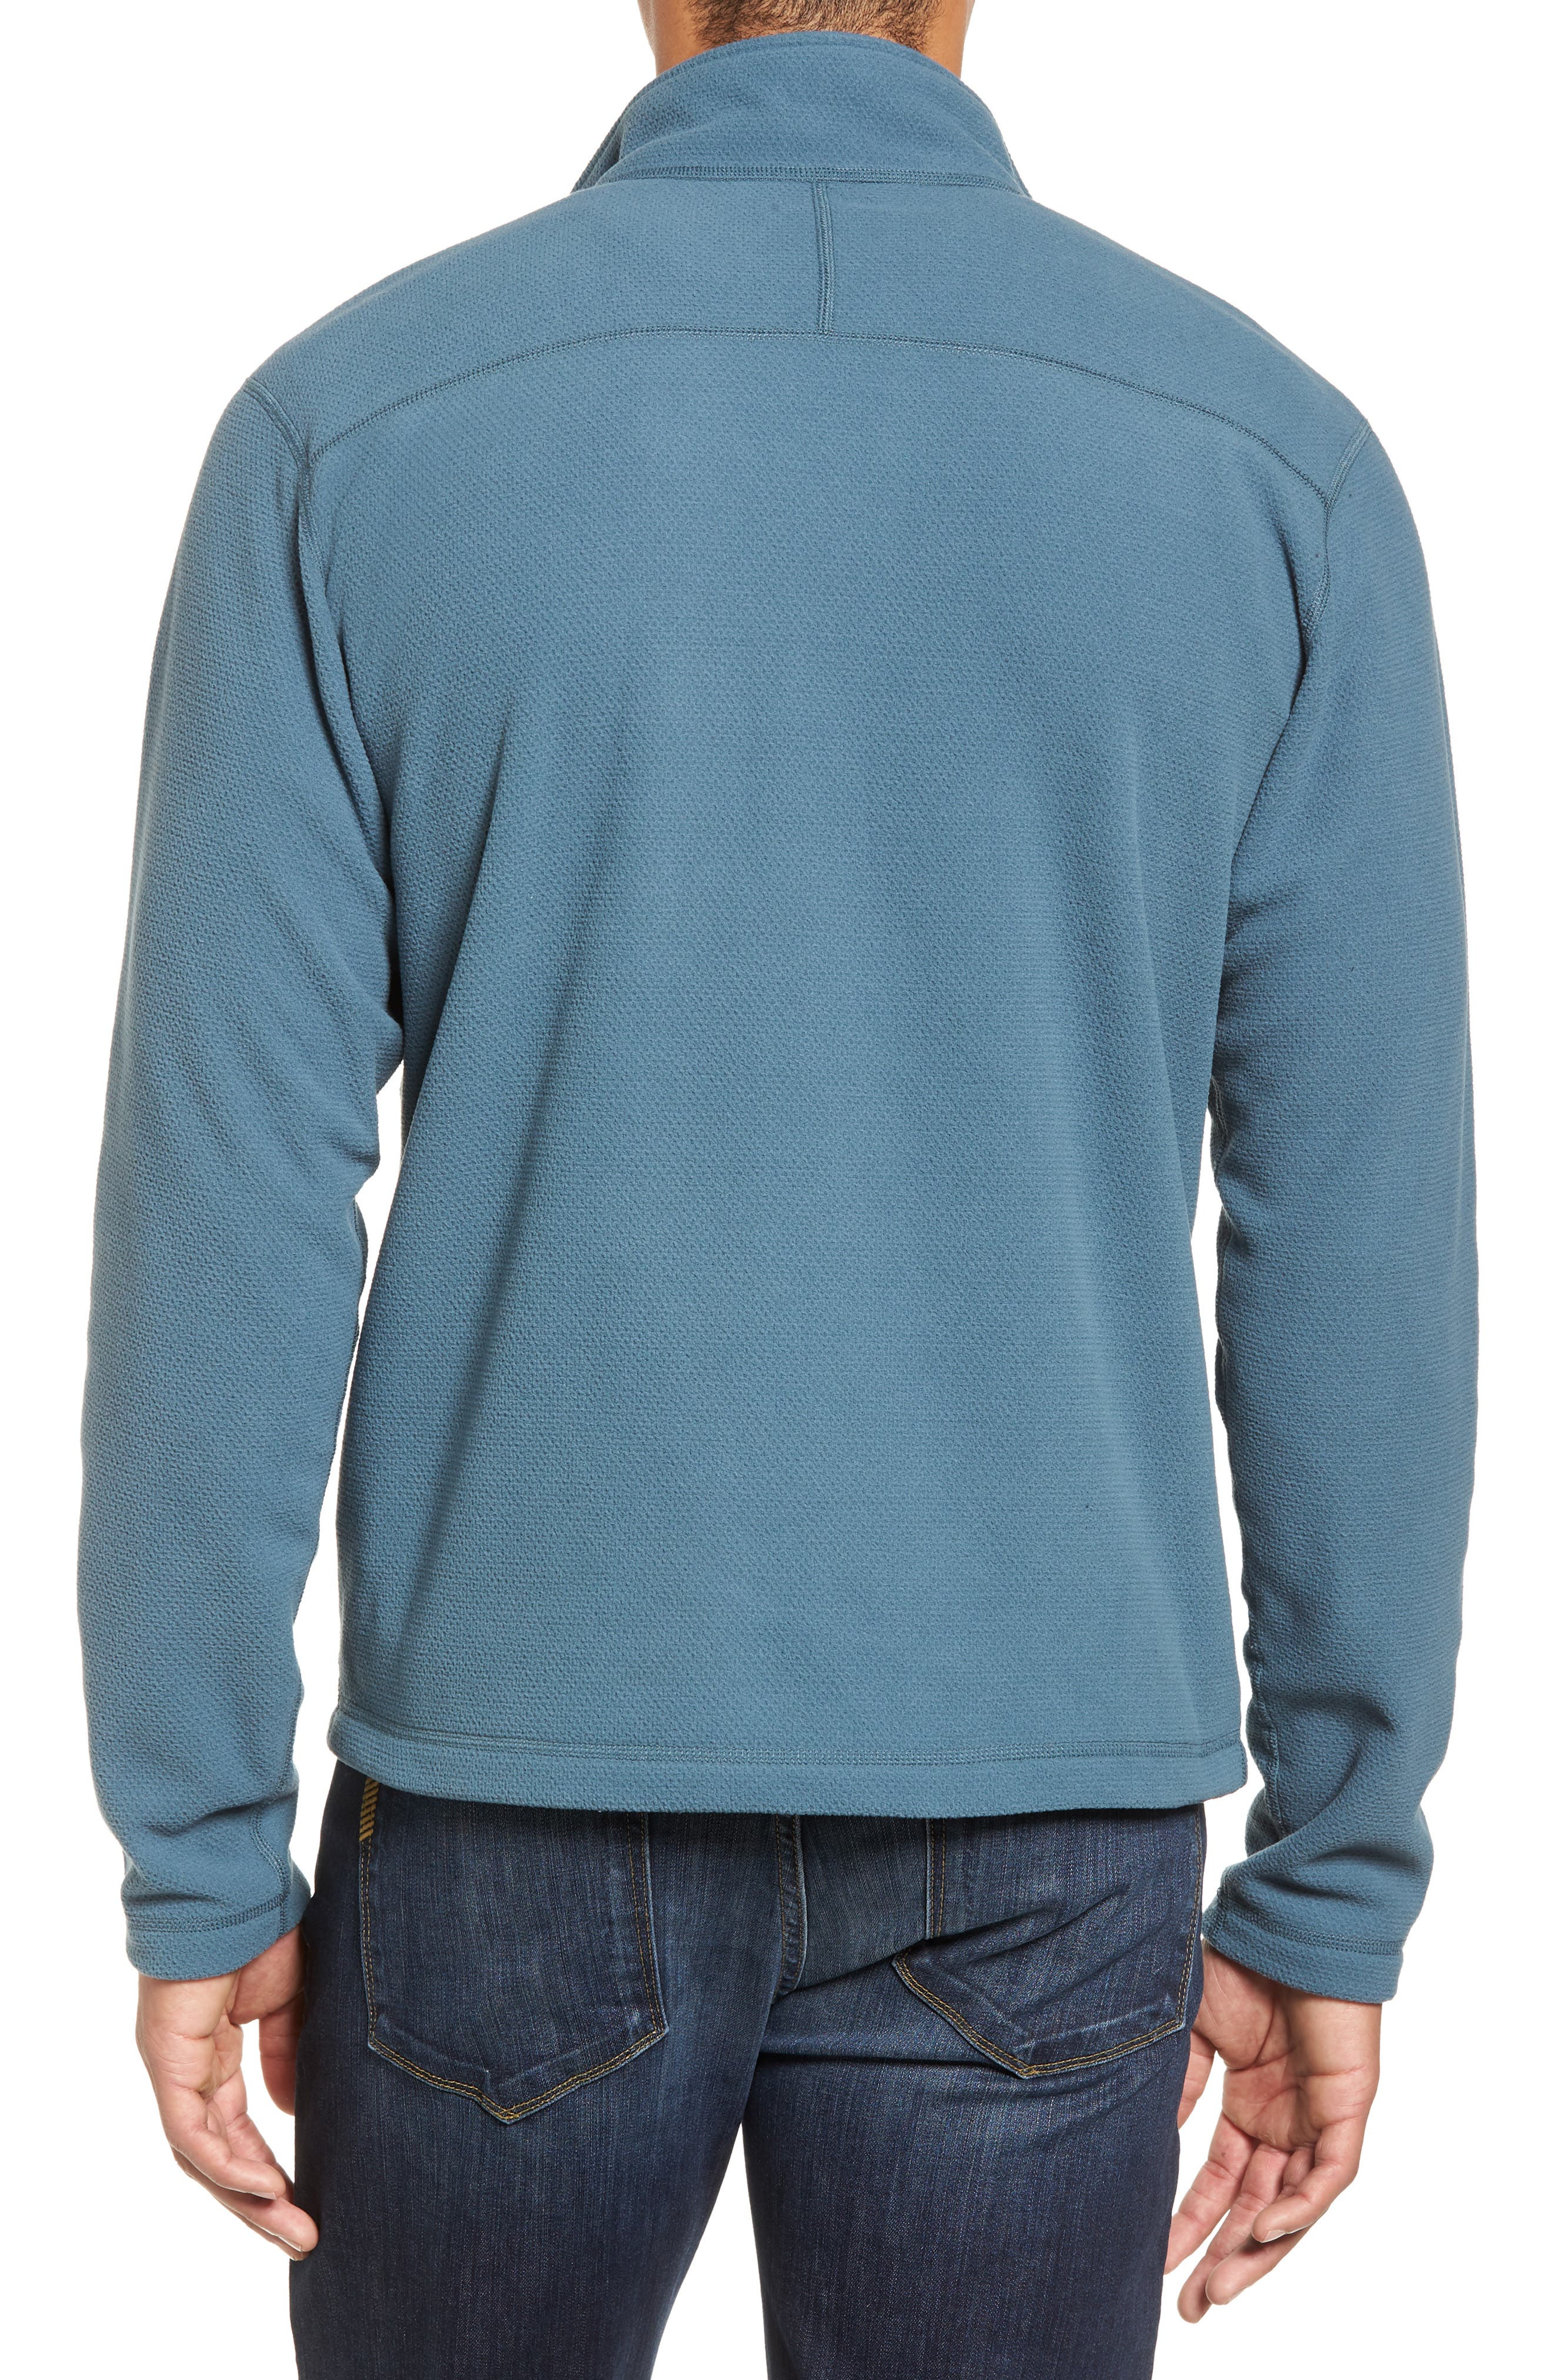 Cap Rock Fleece Jacket,                             Alternate thumbnail 2, color,                             Conquer Blue